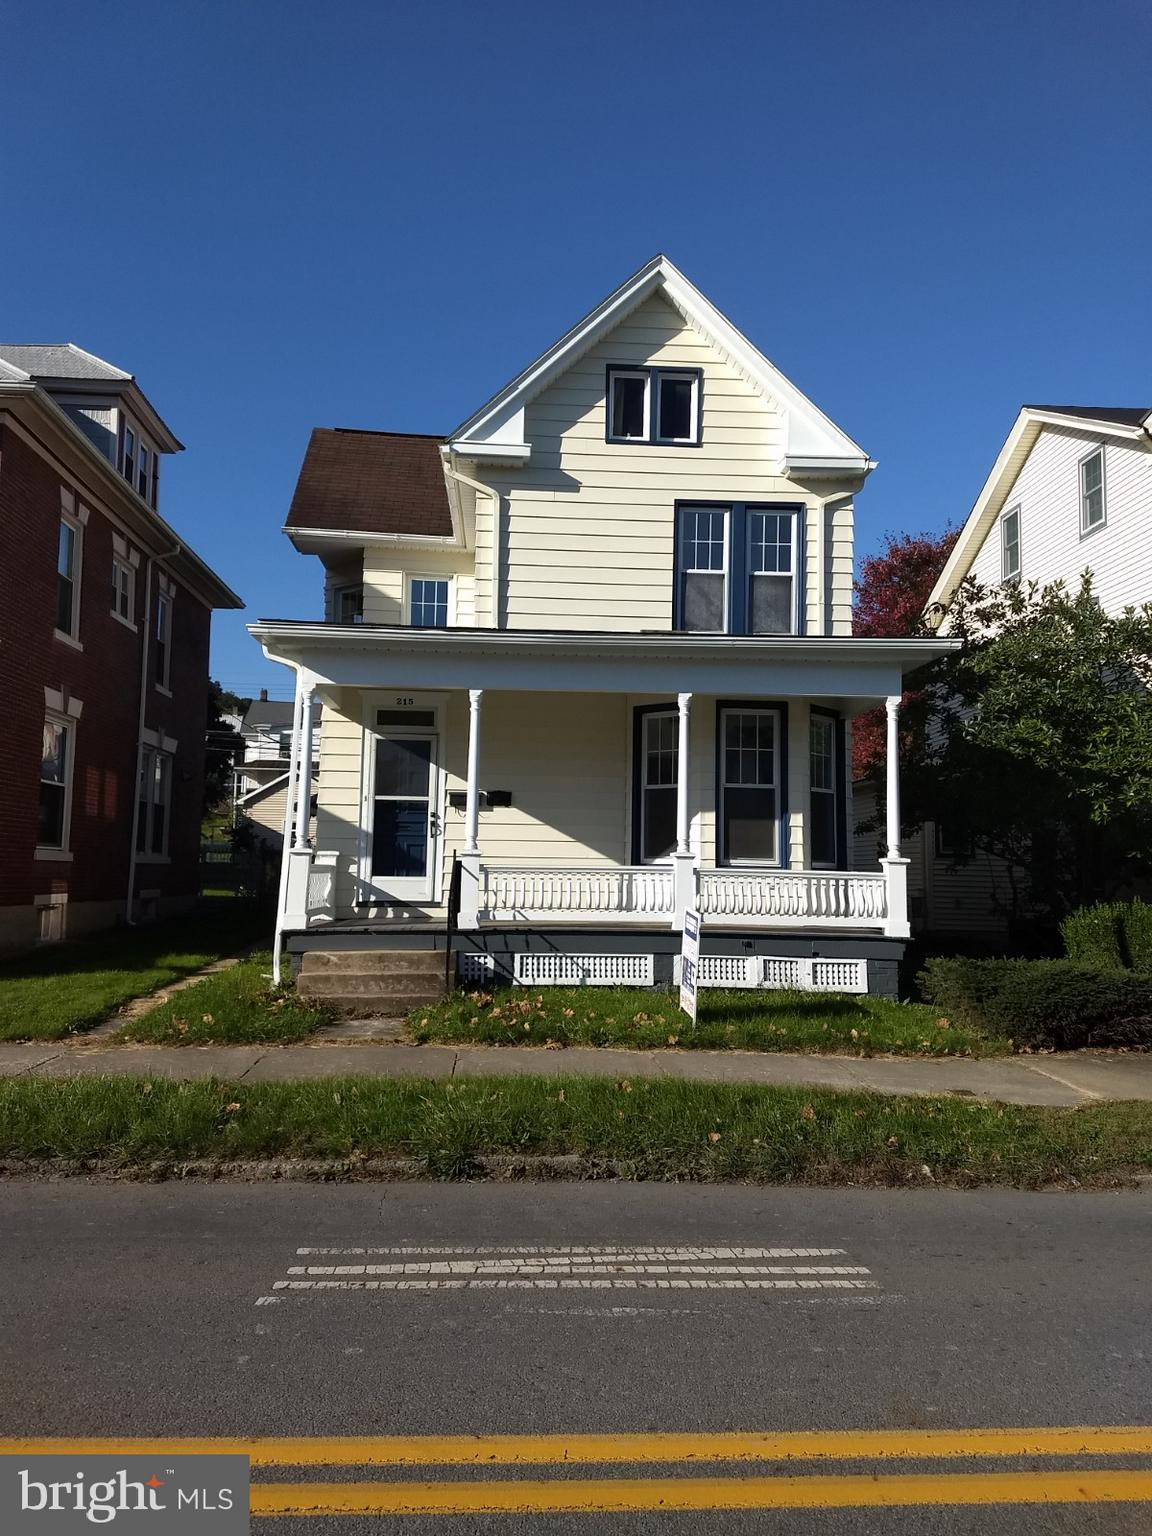 Remodeled Victorian 2 story. Imagine a Southern lifestyle in the heart of Perry County. Beautifully remodeled kitchen, kitchen nook, formal dining room, oversized living room, first floor laundry room, and 4 huge bedrooms. First floor half bath, wooden staircase, and 3rd floor offers additional living space if one wishes to do so. Fenced in backyard, with off street parking. Covered front porch and side porch for those days you want to just sit and drink coffee on a rainy day. Plenty of windows to enjoy natural sunlight every morning as you rise to tackle the next journal of your new day! Fantastic home to raise a large family or maybe even a Band! Come see for yourself! This home also qualifies for the homes for HEROES. Are you in the Nursing Field, EMS, Law Enforcement, Military, or Teaching? FIND OUT HOW YOU CAN GET 1% BACK, Call now!